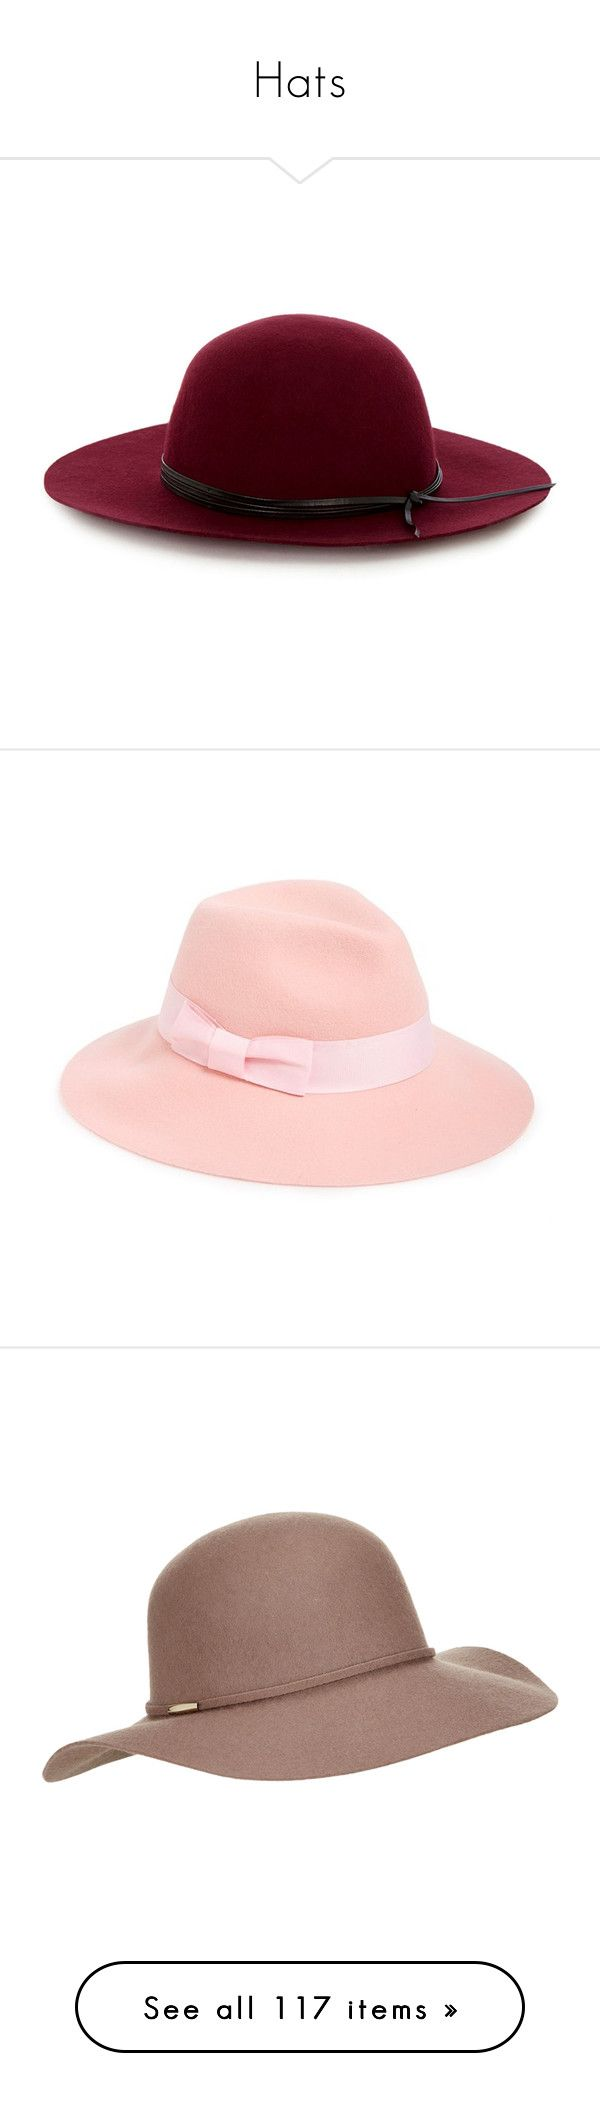 """""""Hats"""" by laumariborche on Polyvore featuring accessories, hats, red, red floppy hat, red fedora hat, red fedora, floppy hat, red hat, blue y acce"""